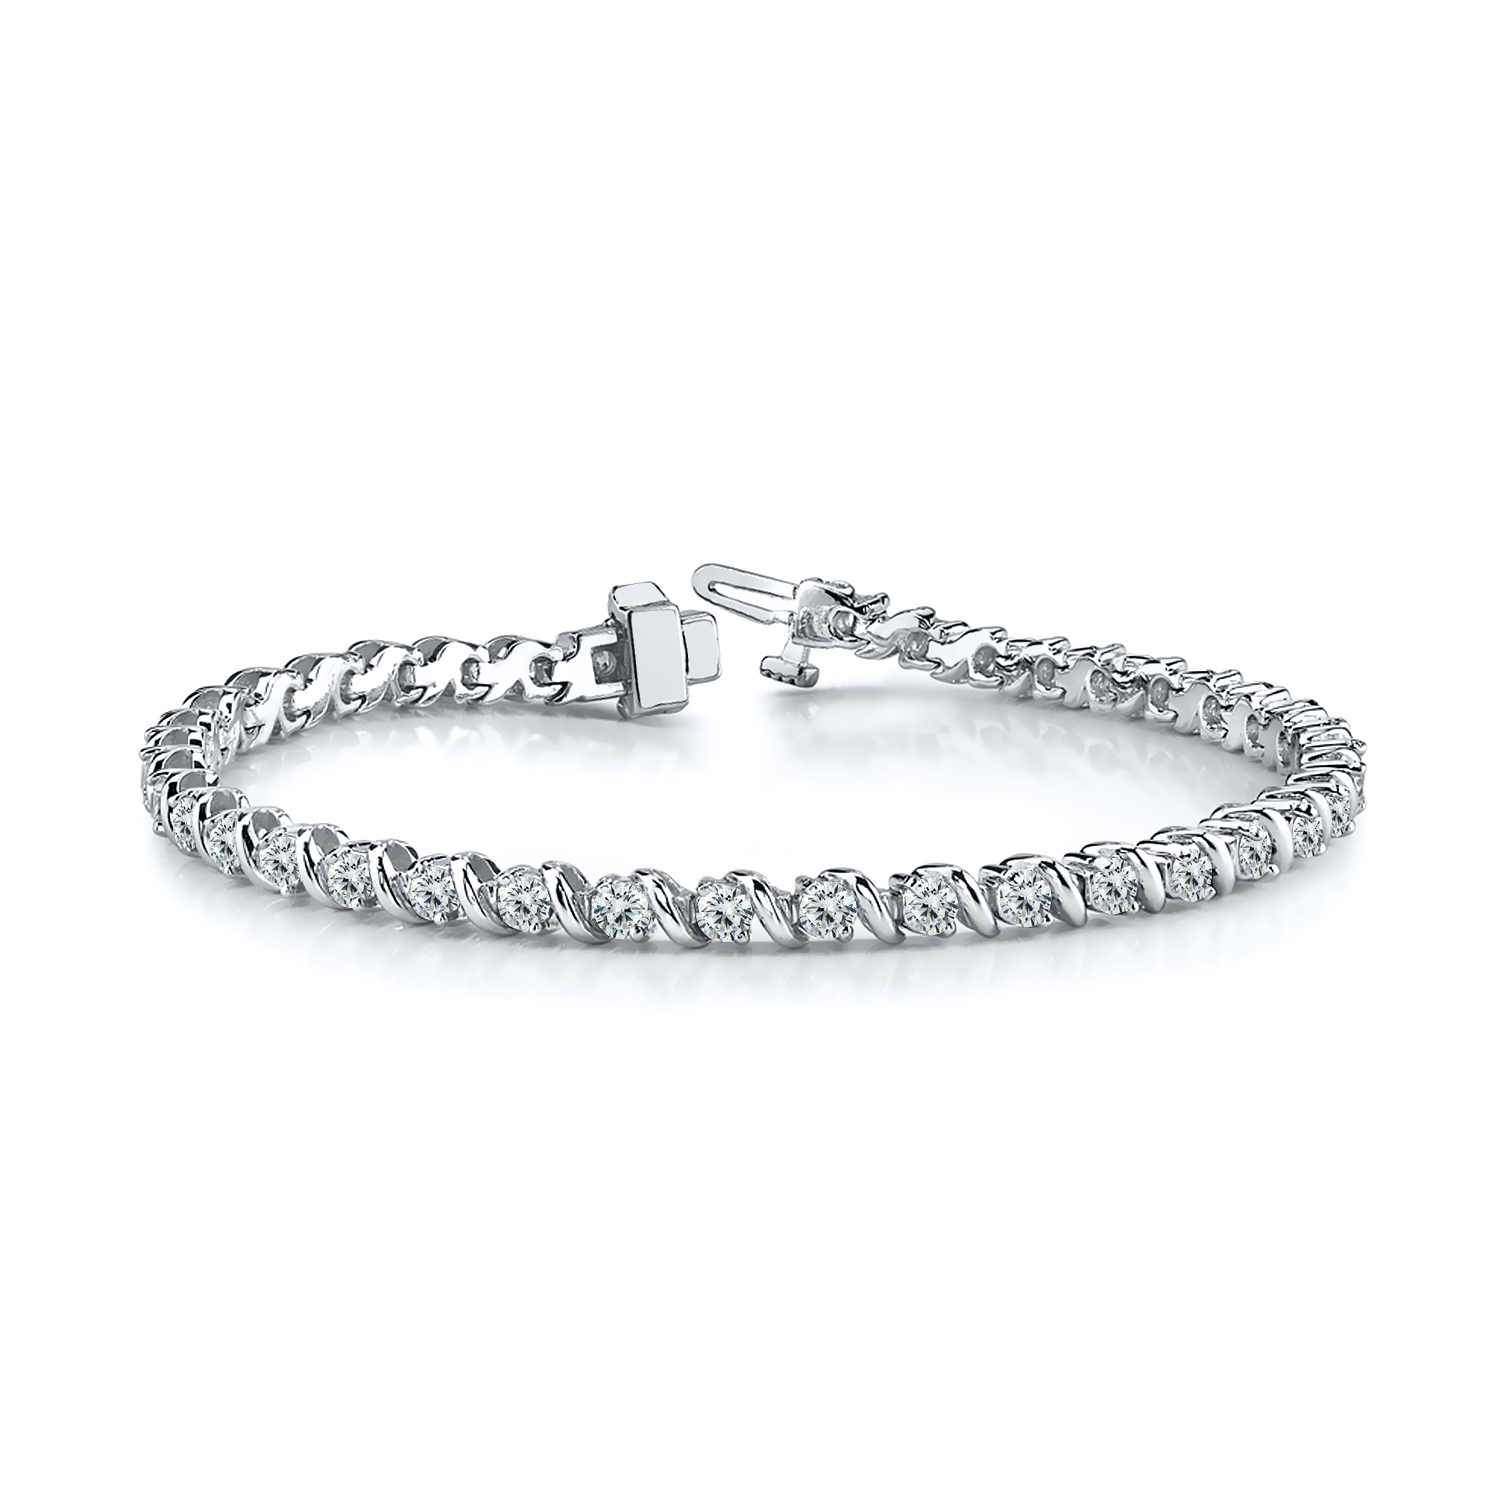 Certified 14k White Gold Round Diamond Tennis Link Bracelet 3.00 ct. tw. (I-J, I1)